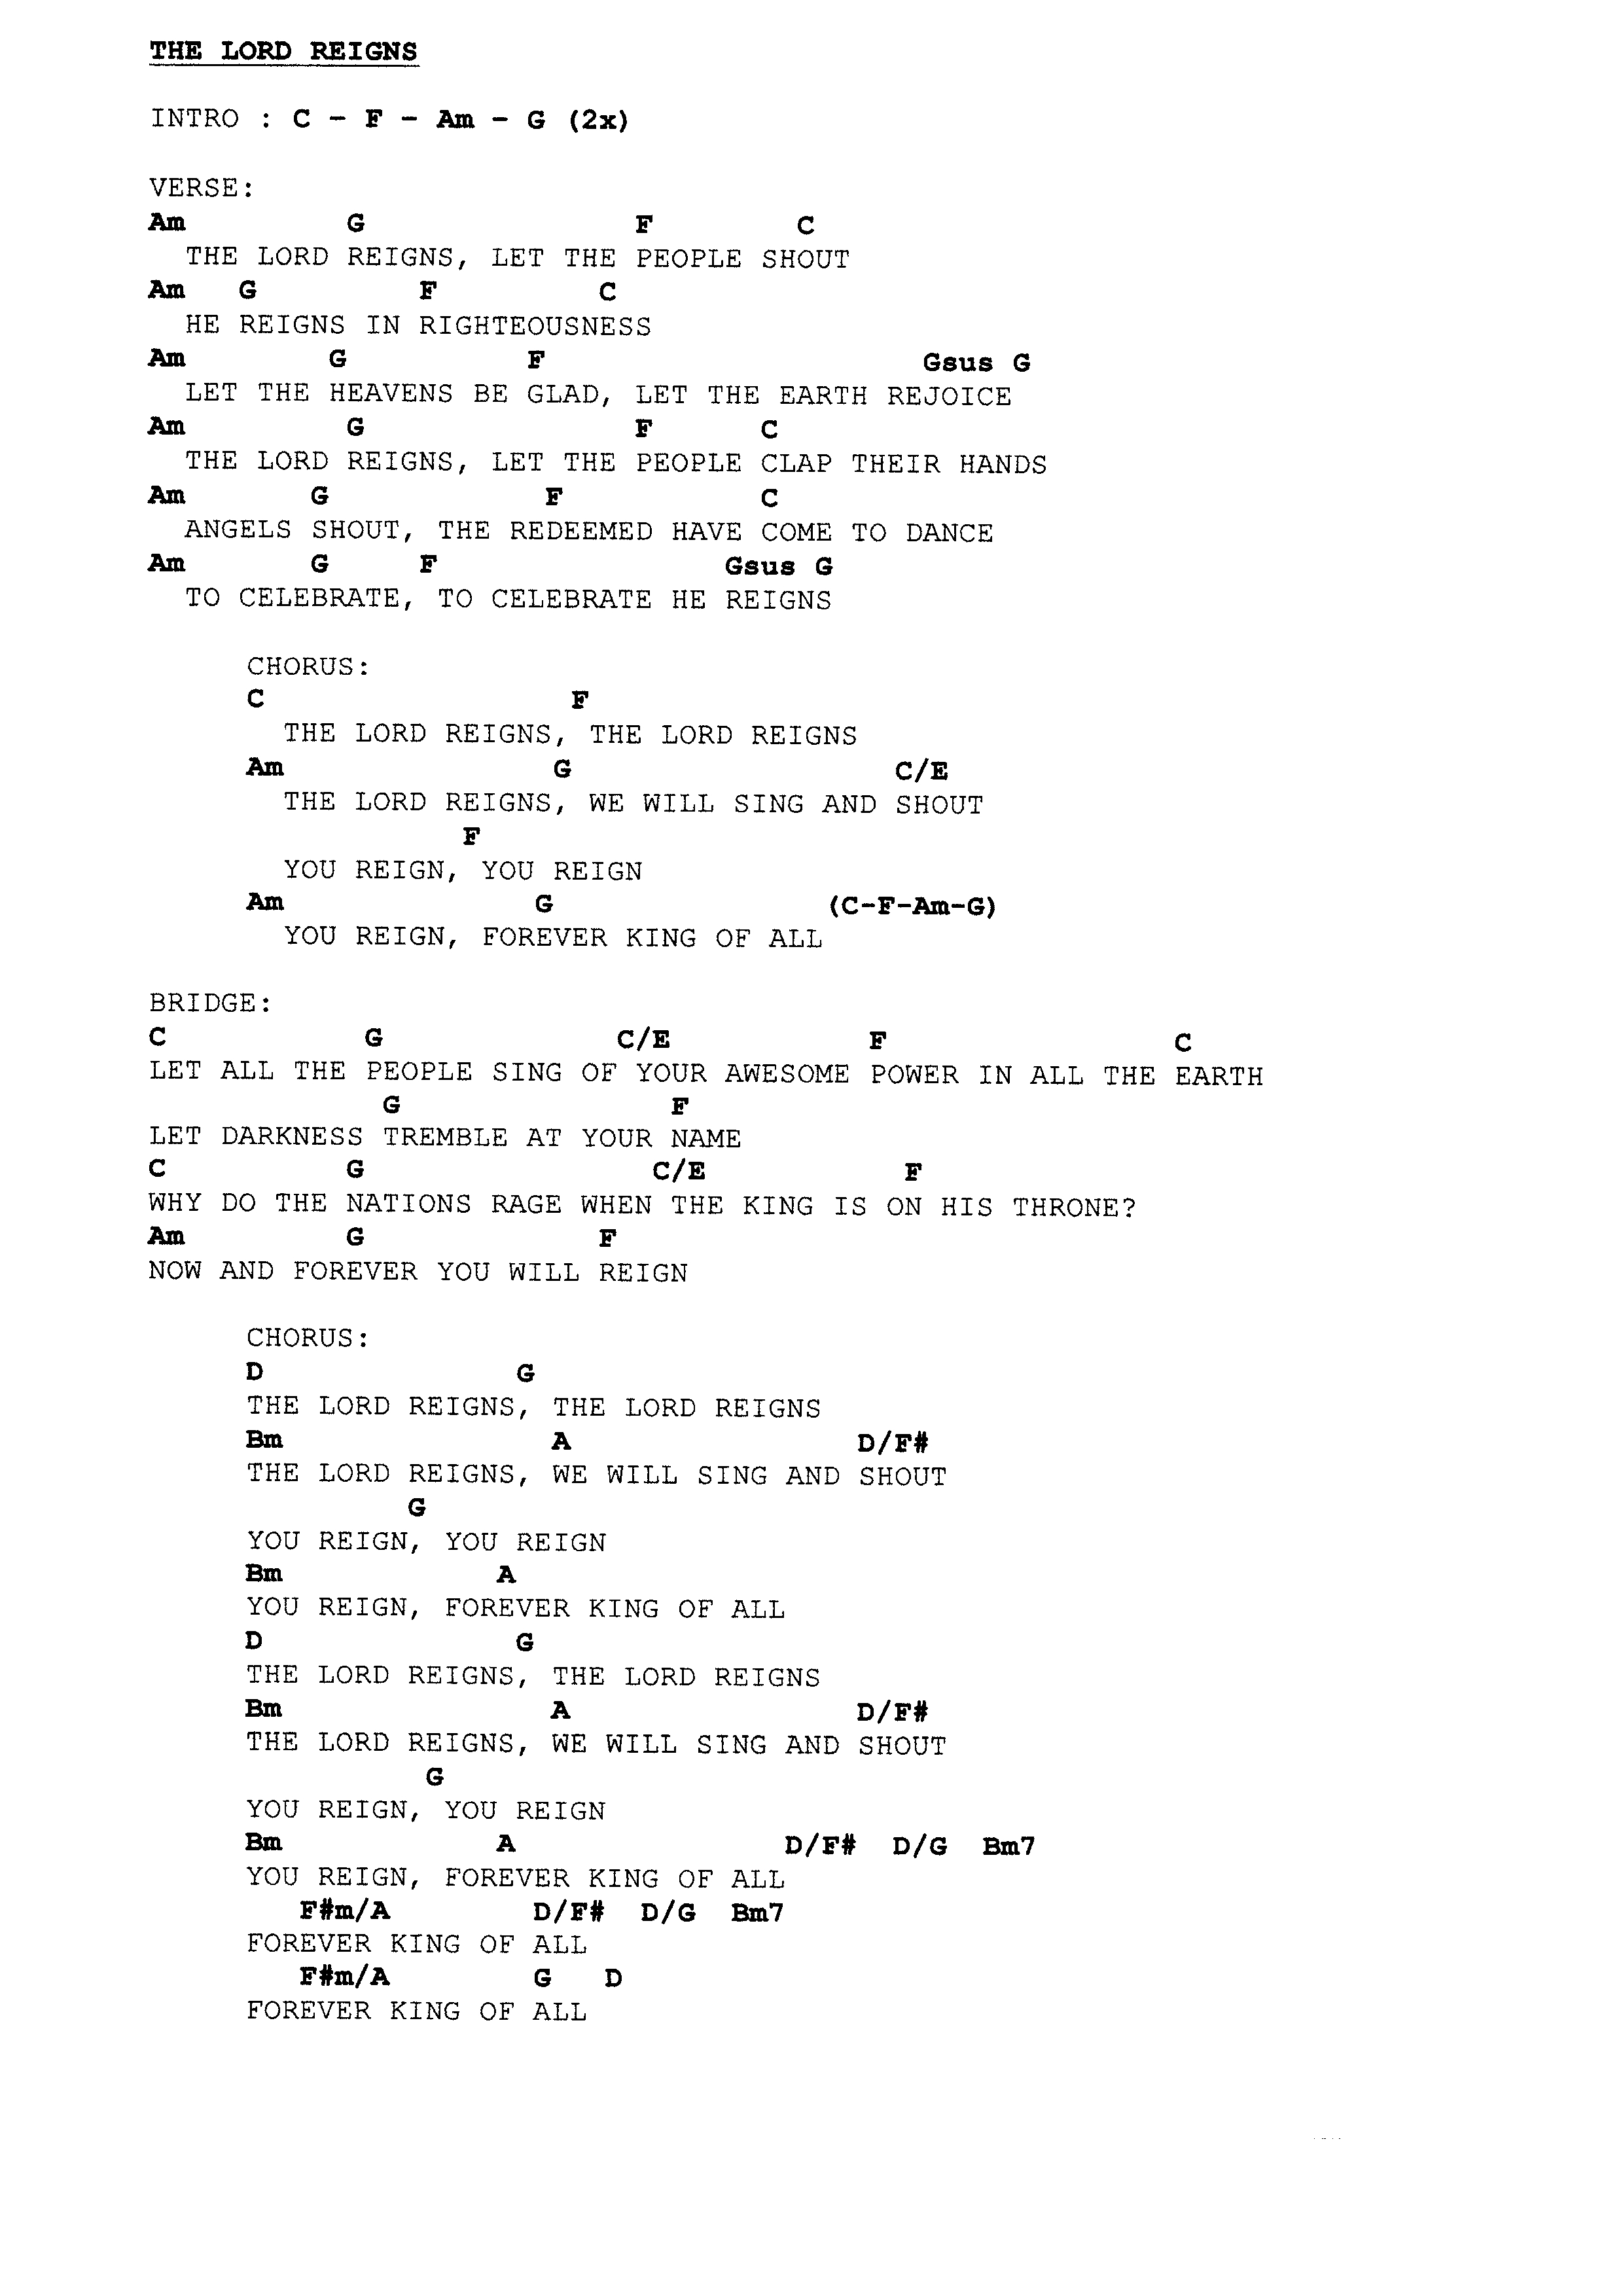 Forever Kari Jobe Chords The Idiot In Me Page 9 This Is All About John You Know If You